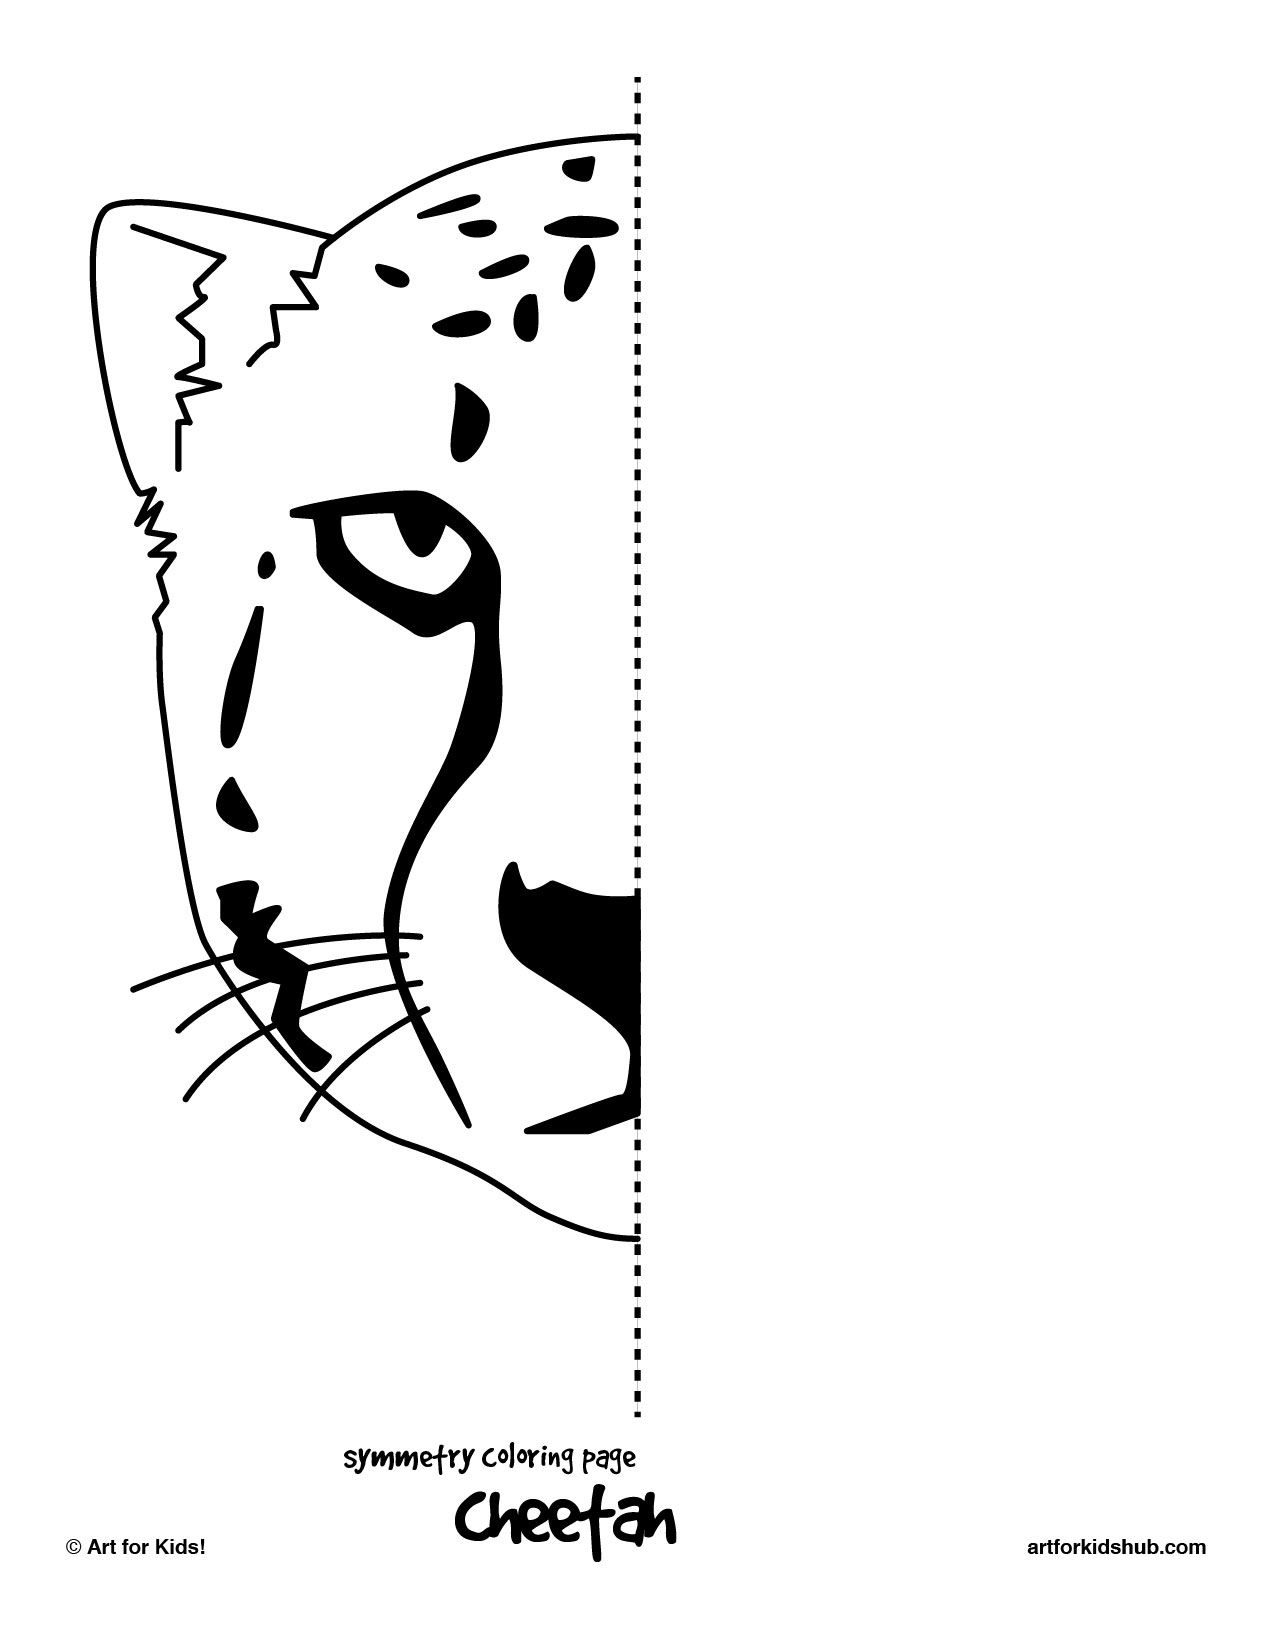 I Made 6 Free Coloring Pages To Illustrate Symmetry Cat Symmetry That Is My Kids Loved The Bug